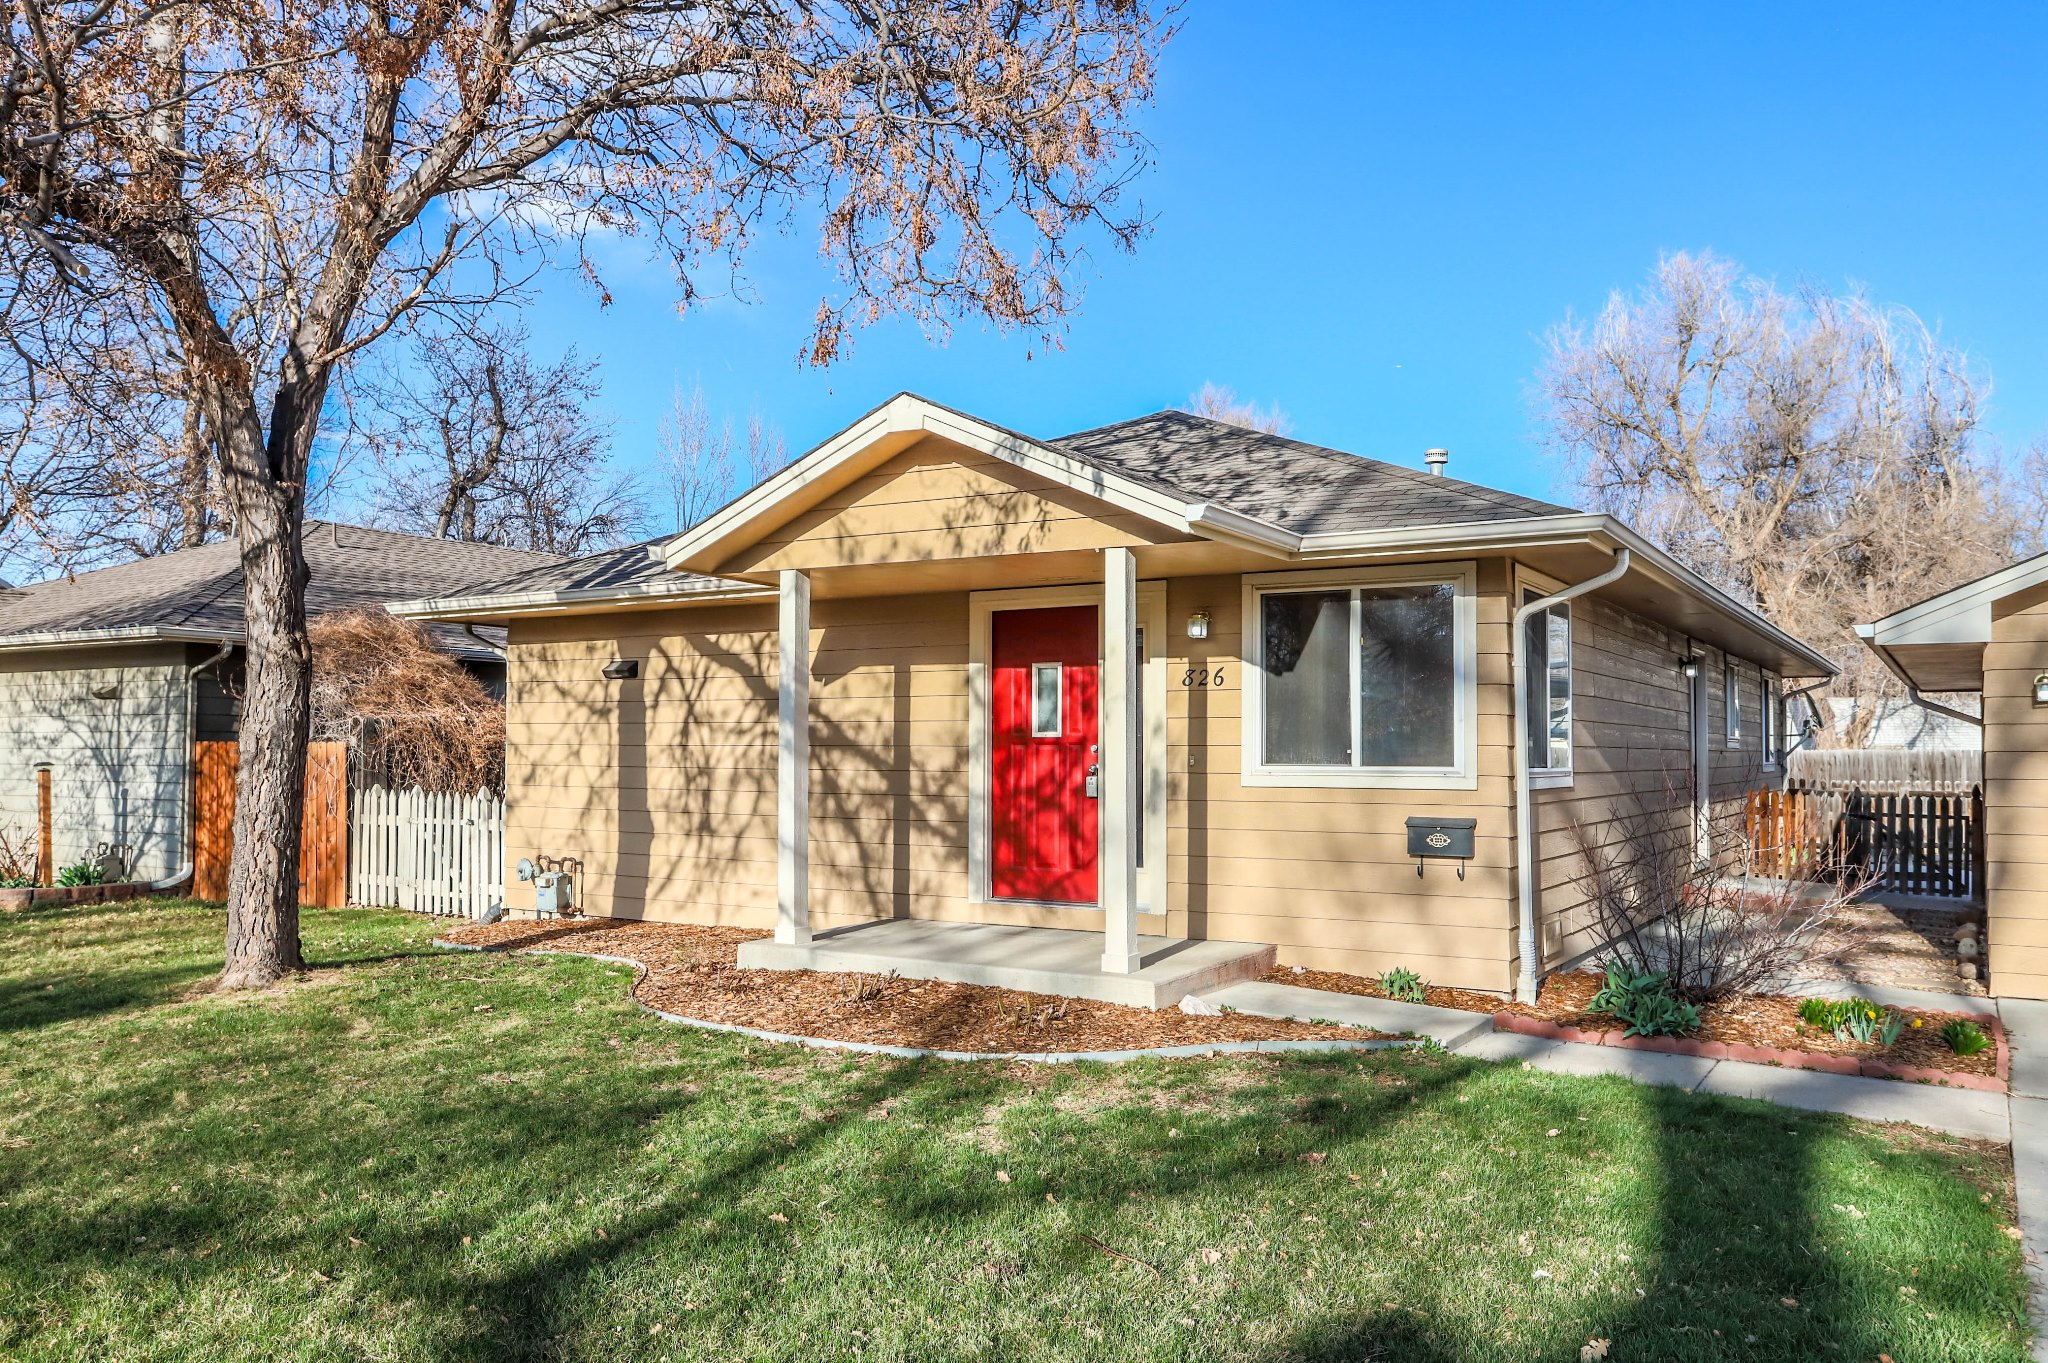 REAL ESTATE LISTING: 826 Atwood St Longmont Front Exterior